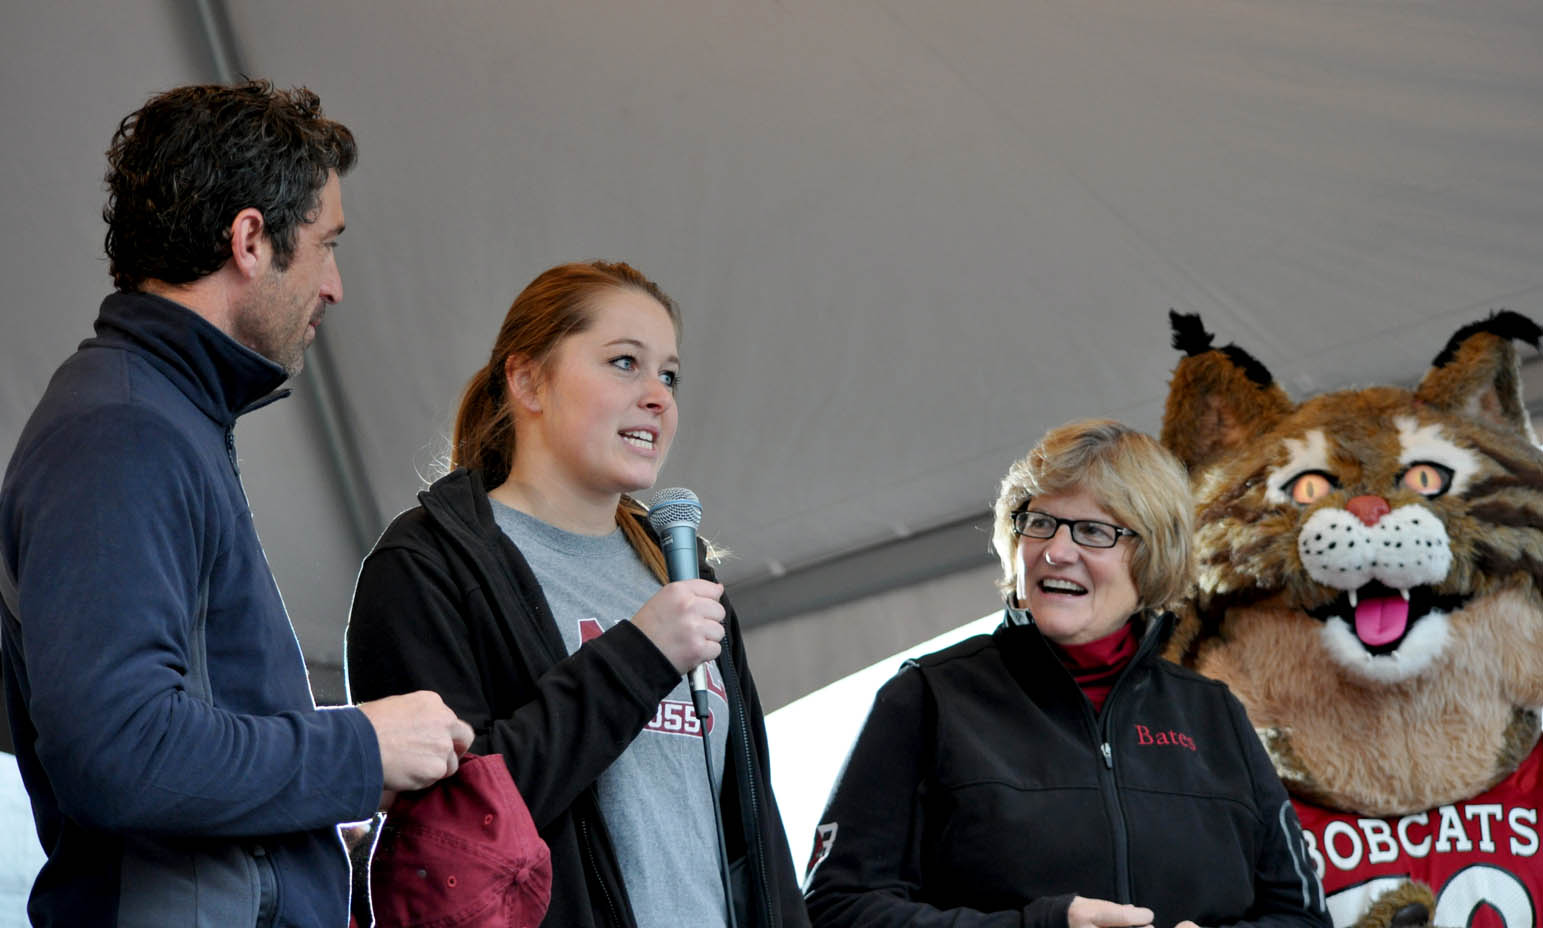 As Patrick Dempsey, President Clayton Spencer and the Bobcat listen,Hillary Throckmorton '15 offers comments after accepting the inaugural CBB Challenge Cup on Oct. 12, 2013. Photo by Meg Kimmel/Bates College.